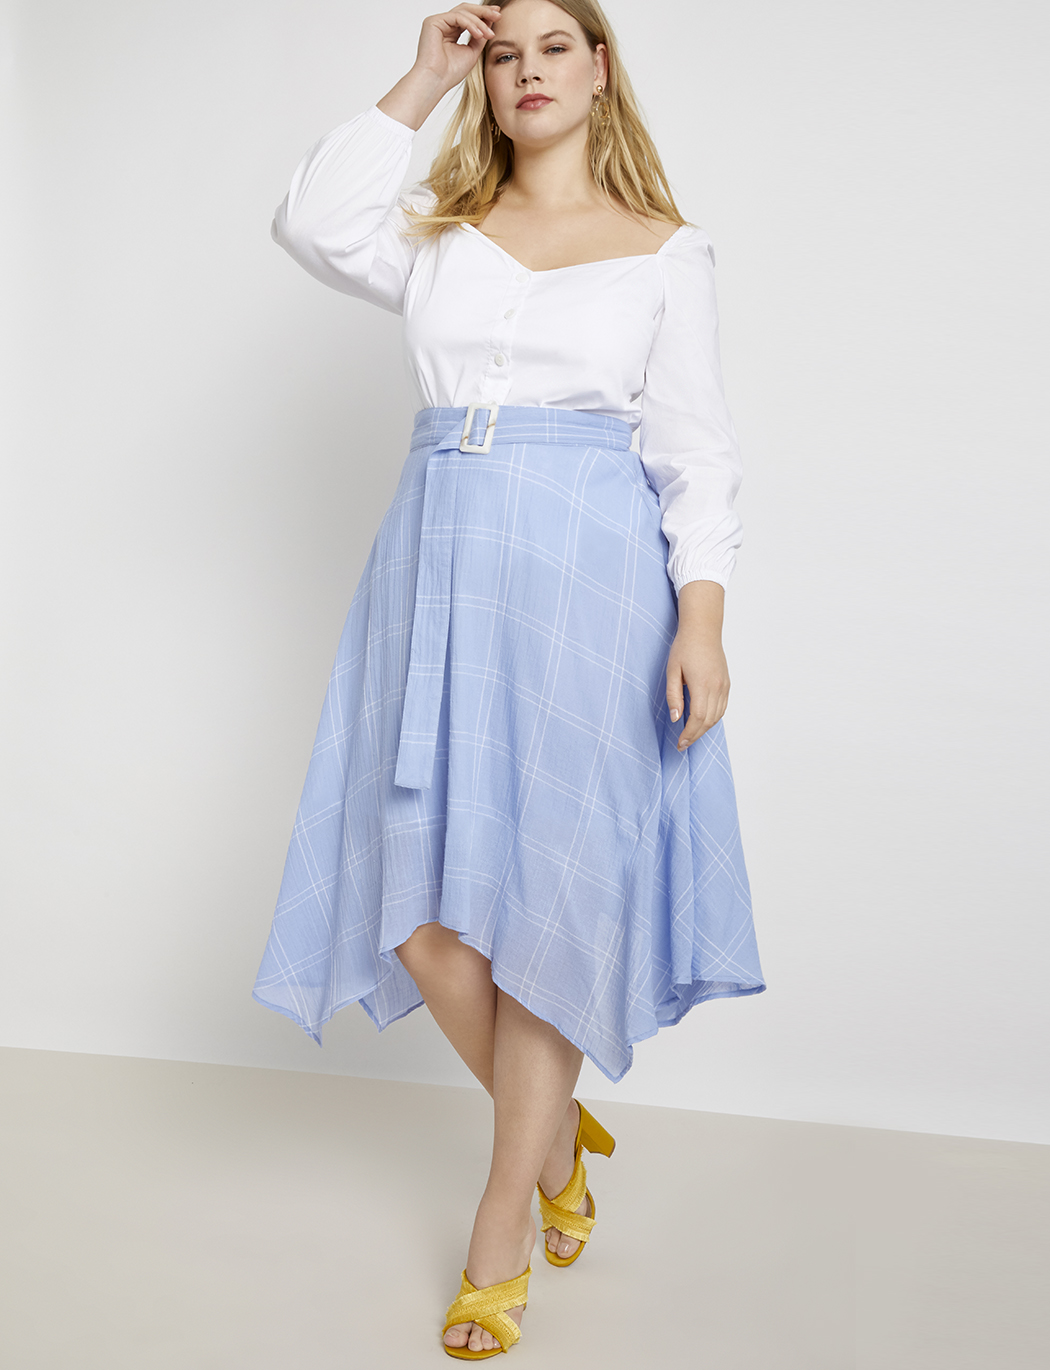 Belted Windowpane Handkerchief Hem Skirt | Women\'s Plus Size ...